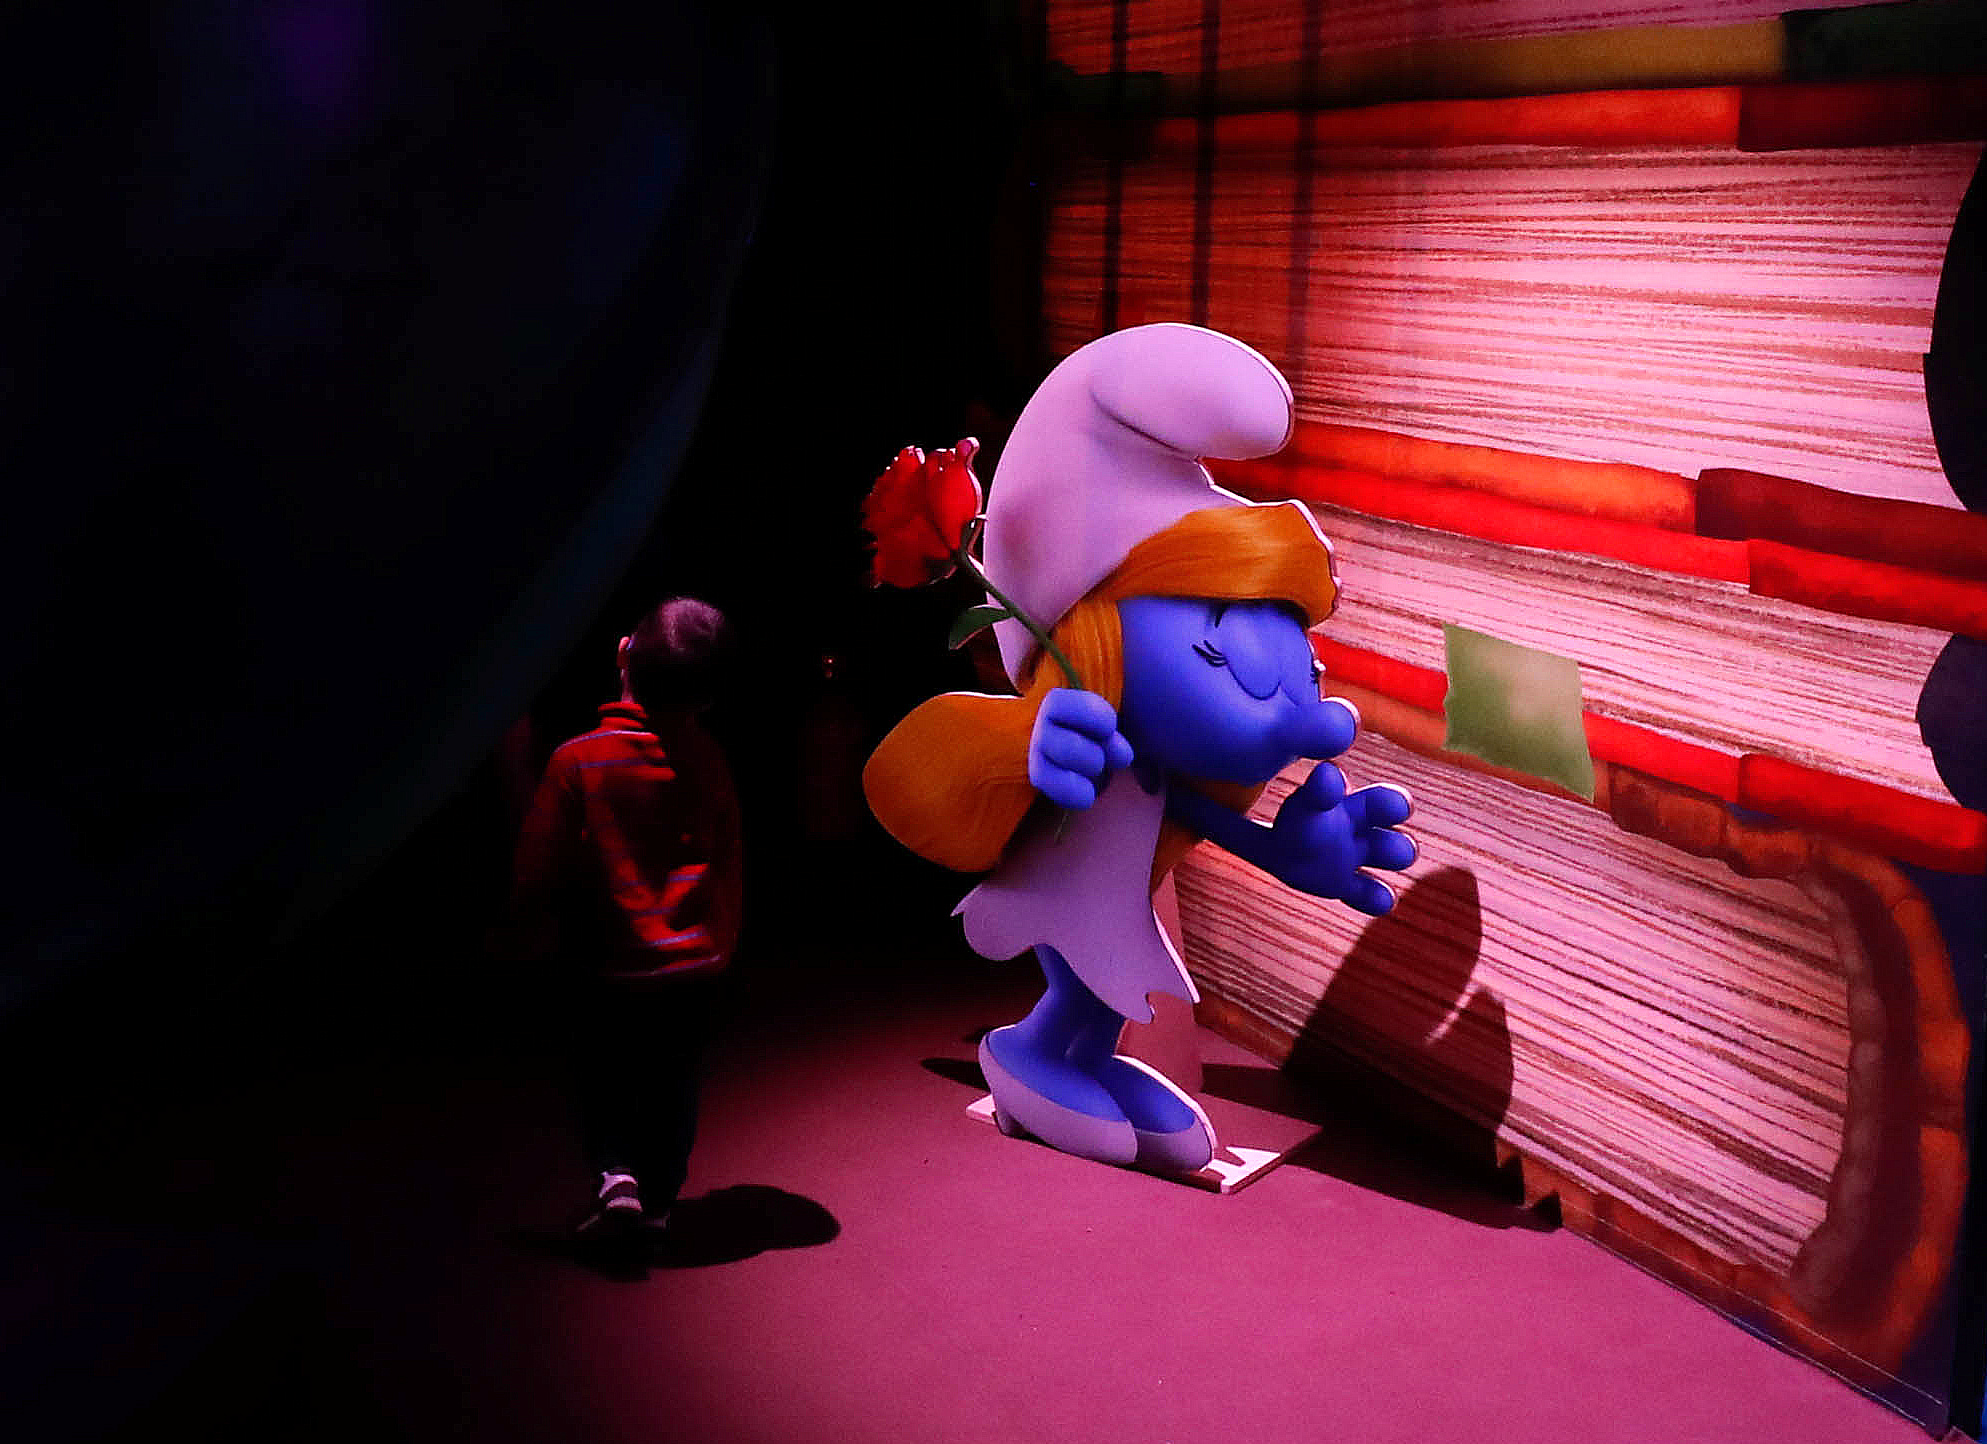 A boy walks past a Smurf character at the Smurf Experience exhibition, depicting a larger-than-life recreation of the Smurf village, marking the 60th anniversary of the creation of the Smurfs by cartoonist Peyo, in Brussels, Belgium, June 12, 2018.